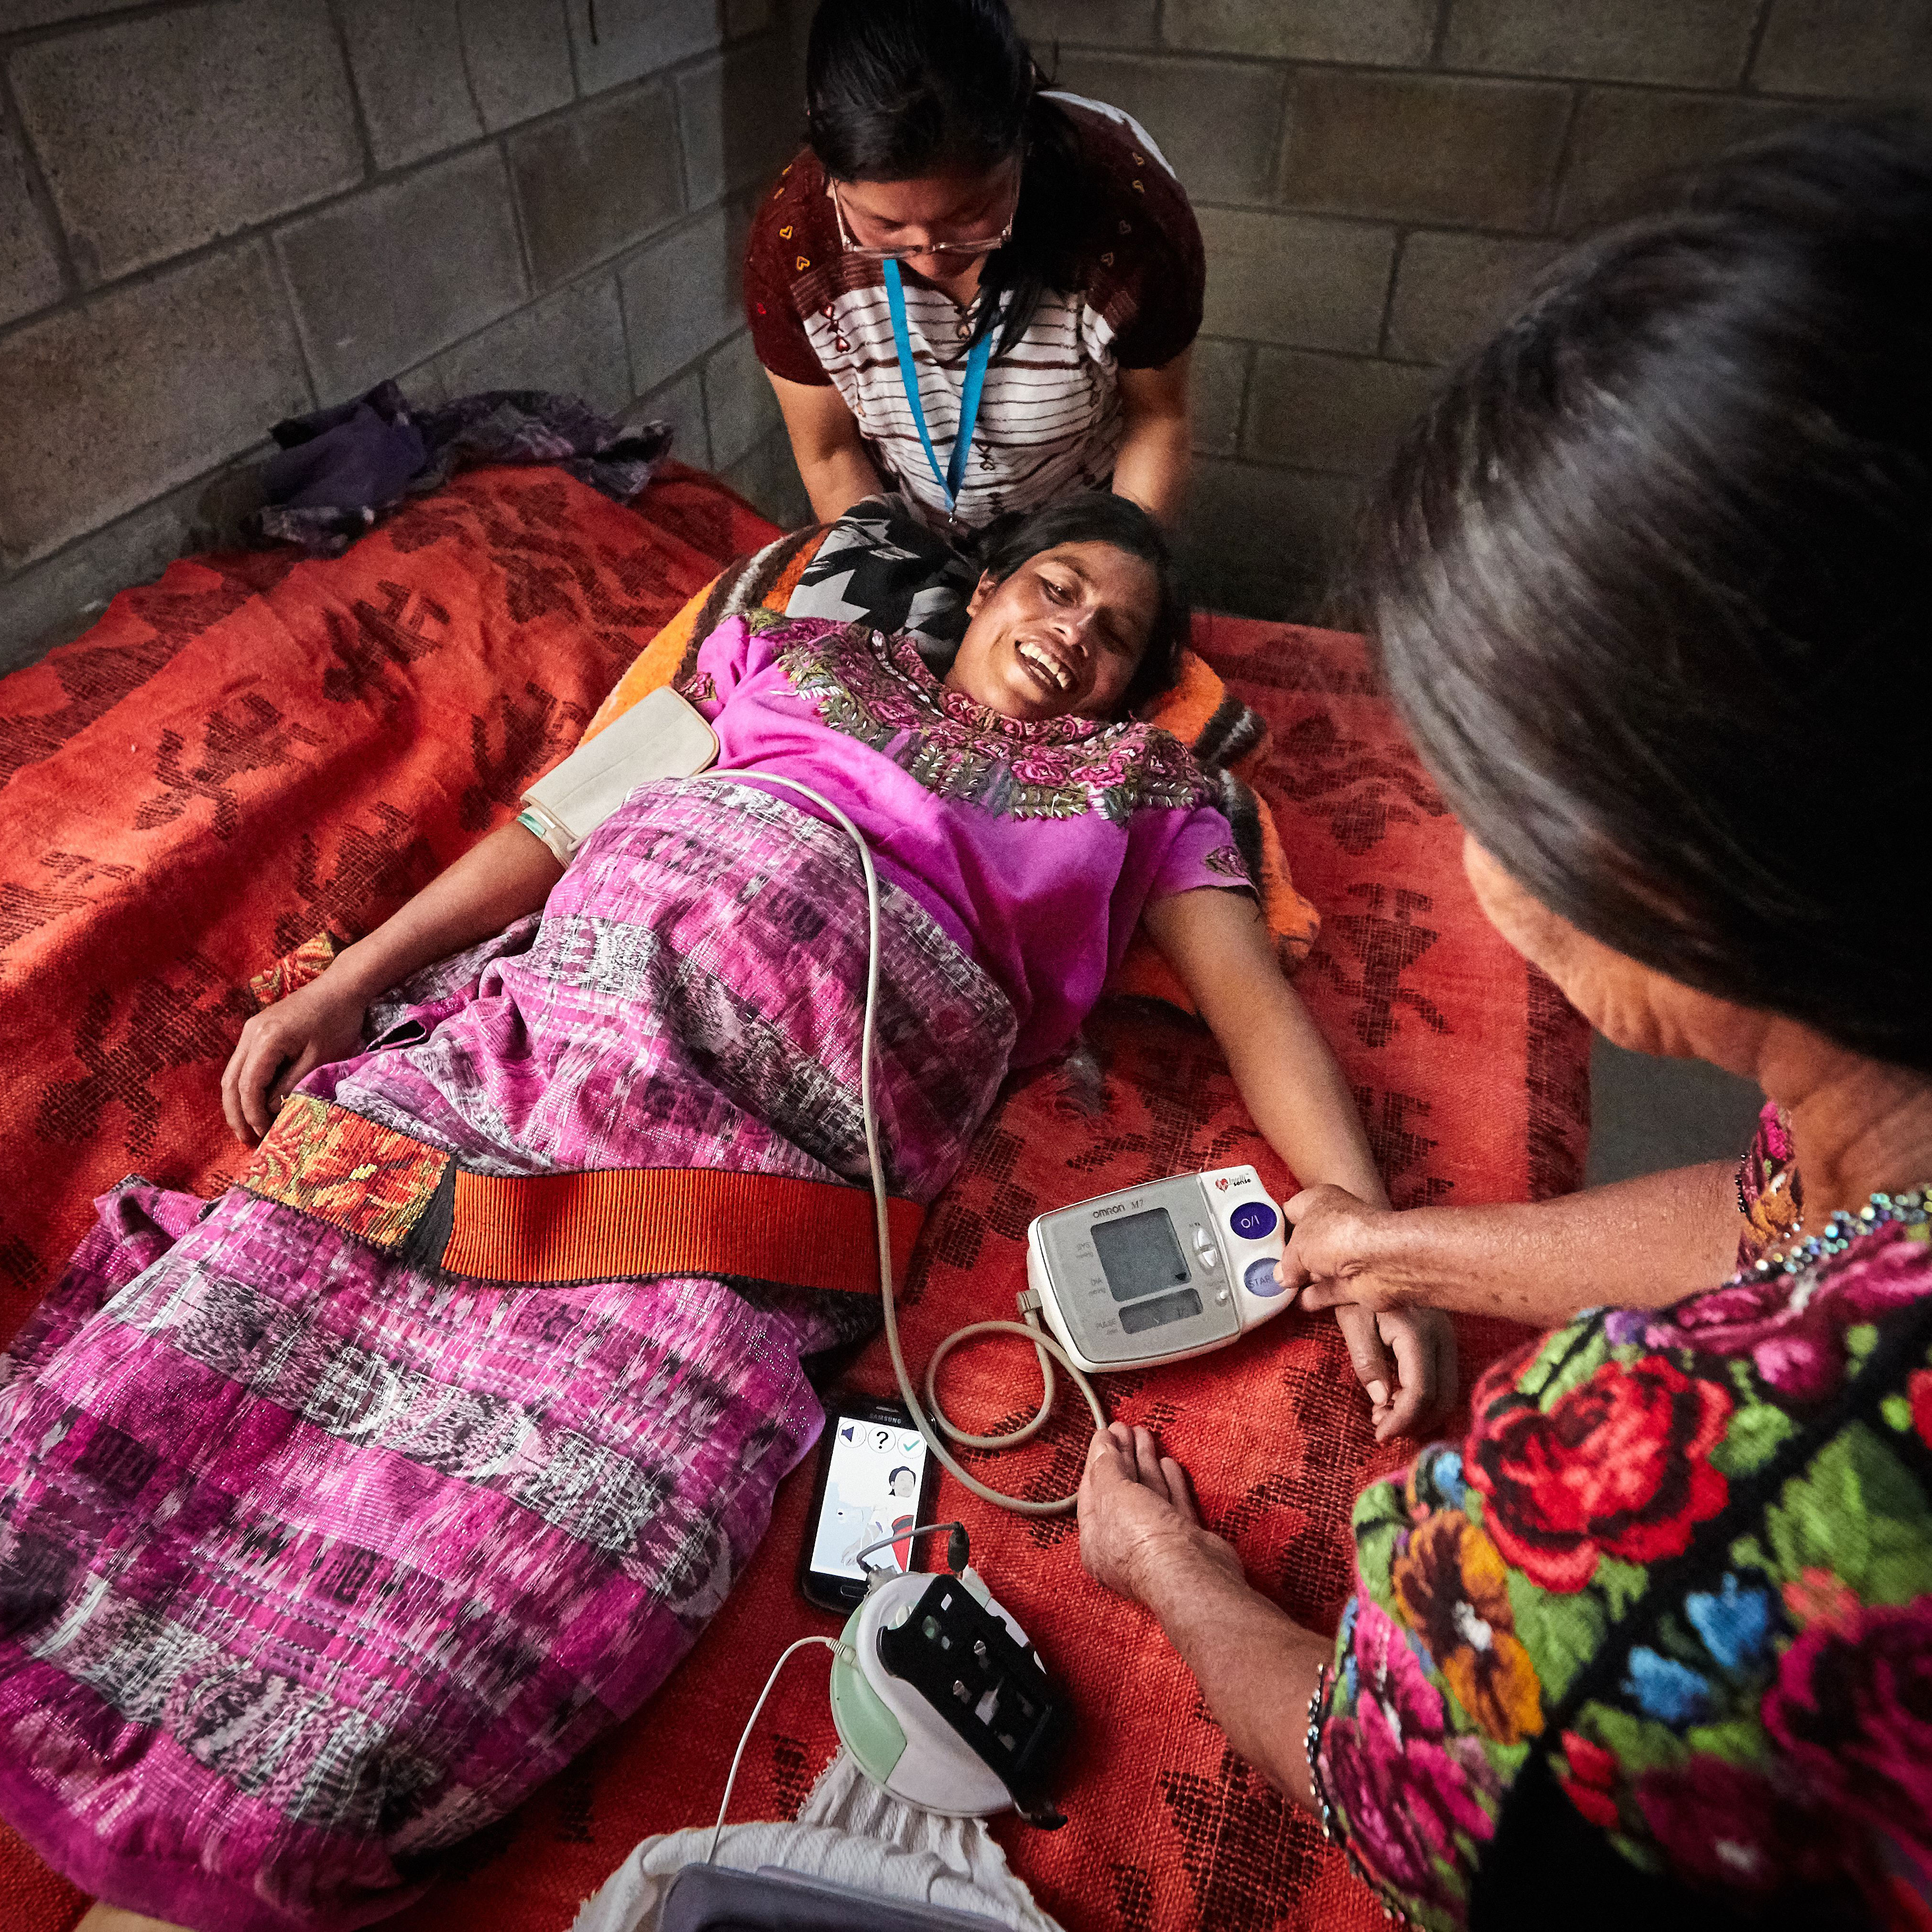 Pregnant woman being monitored